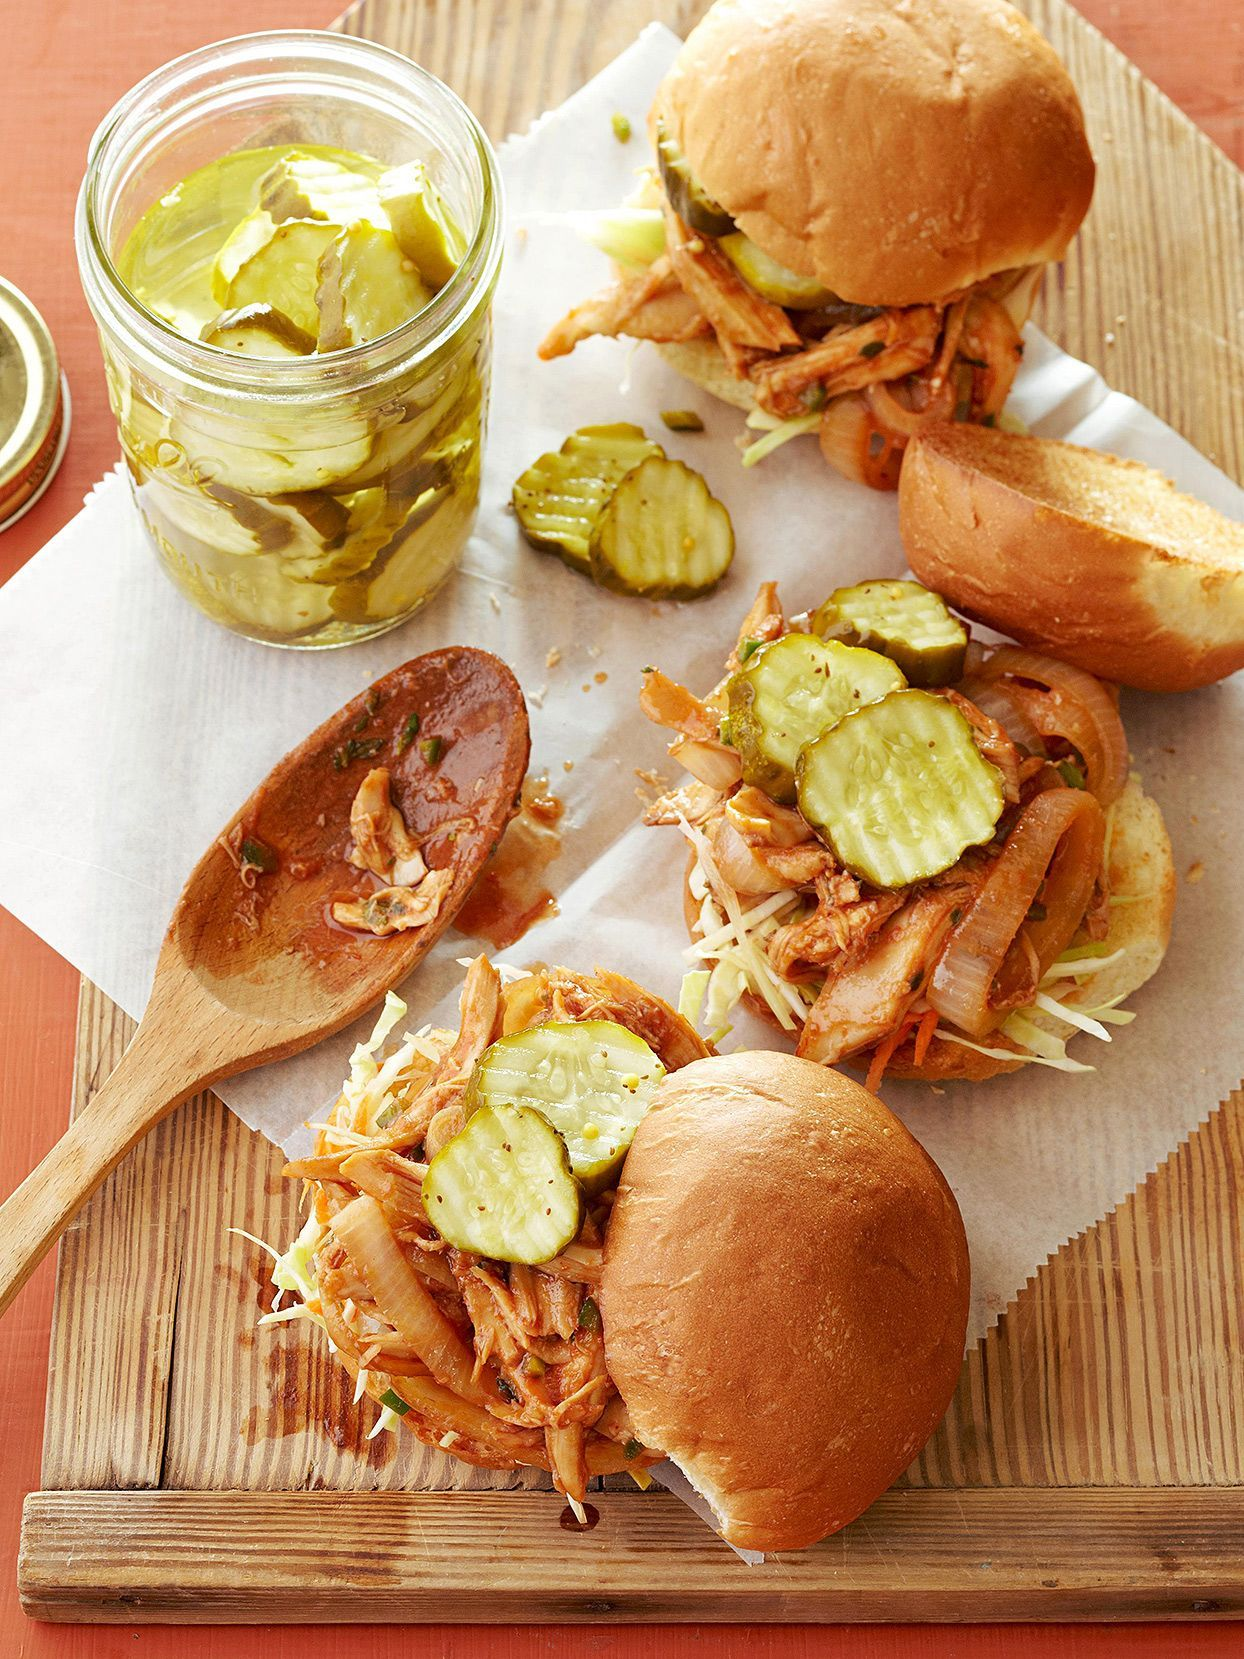 Barbecue is usually a low-and-slow, all-day process. But thanks to rotisserie or leftover chicken, you can prep this oh-so-easy meal in about 30 minutes. #dinnerideas #chickenrecipes #bestchickenrecipes #easydinnerideas #bhg